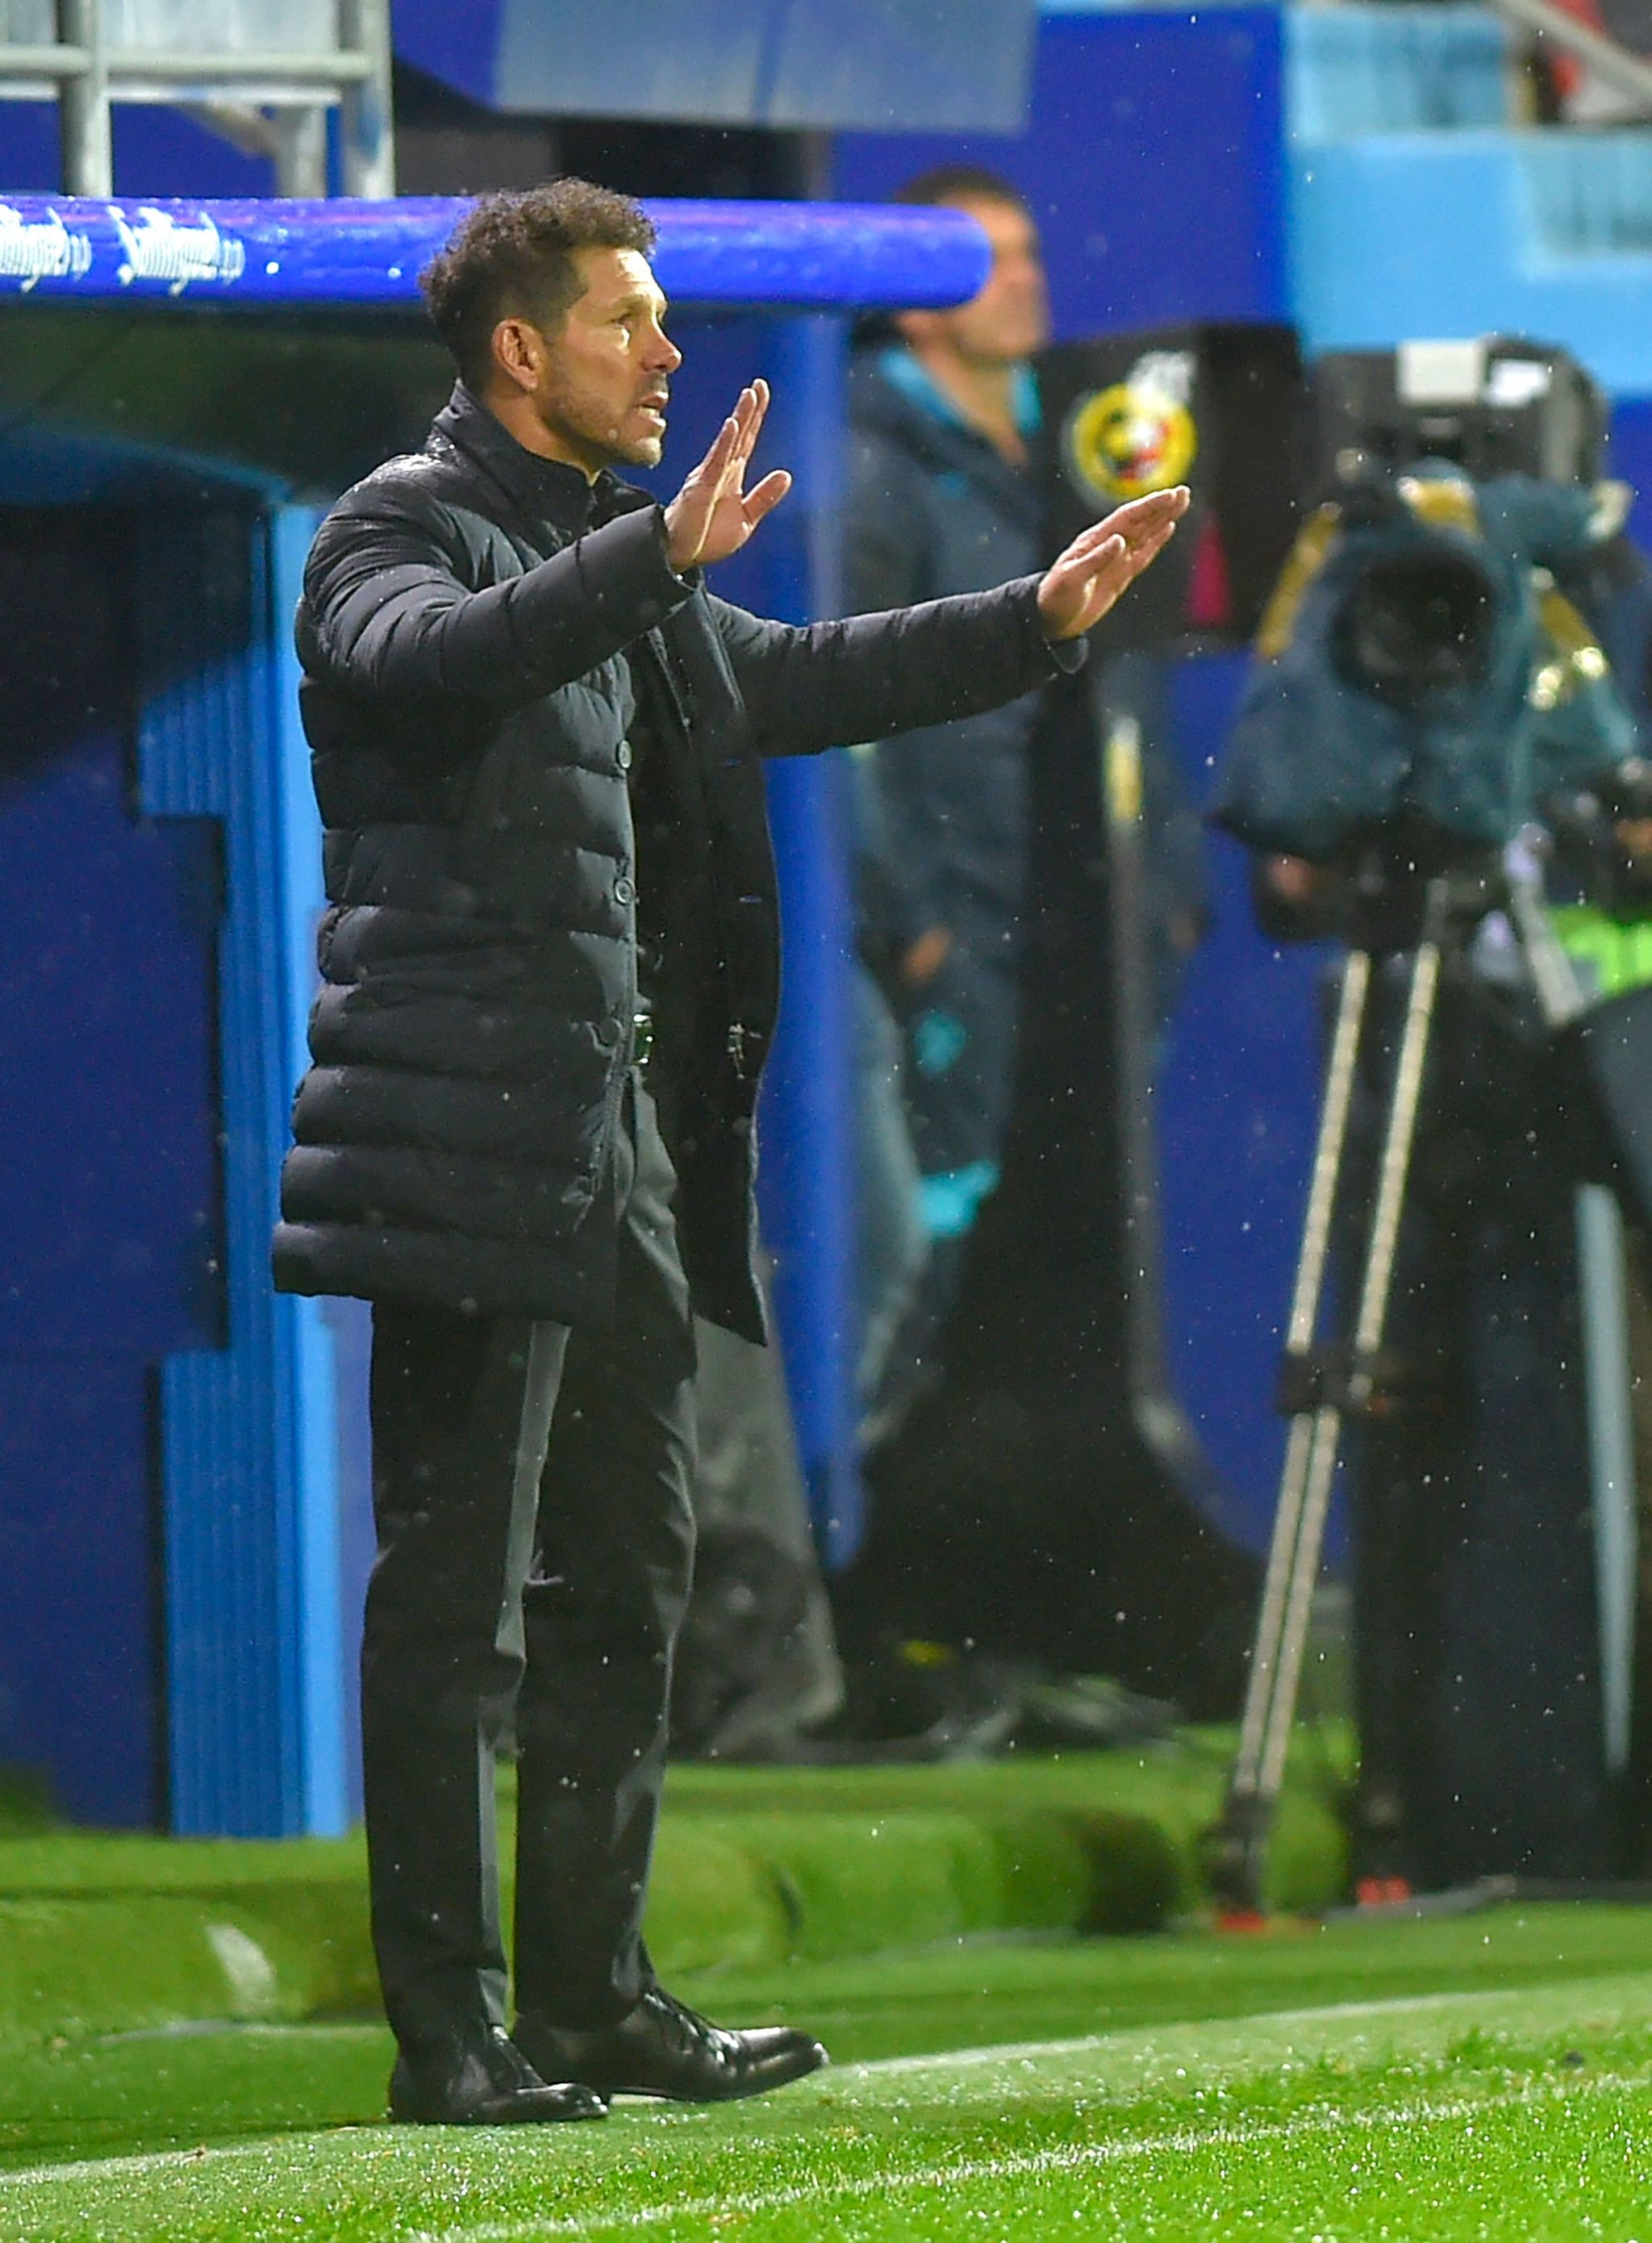 <HIT>Atletico</HIT> Madrids Argentinian coach Diego Simeone gestures during the Spanish league football match between SD Eibar and Club <HIT>Atletico</HIT> de Madrid at the Ipurua stadium in Eibar on January 18, 2020. (Photo by ANDER GILLENEA / AFP)